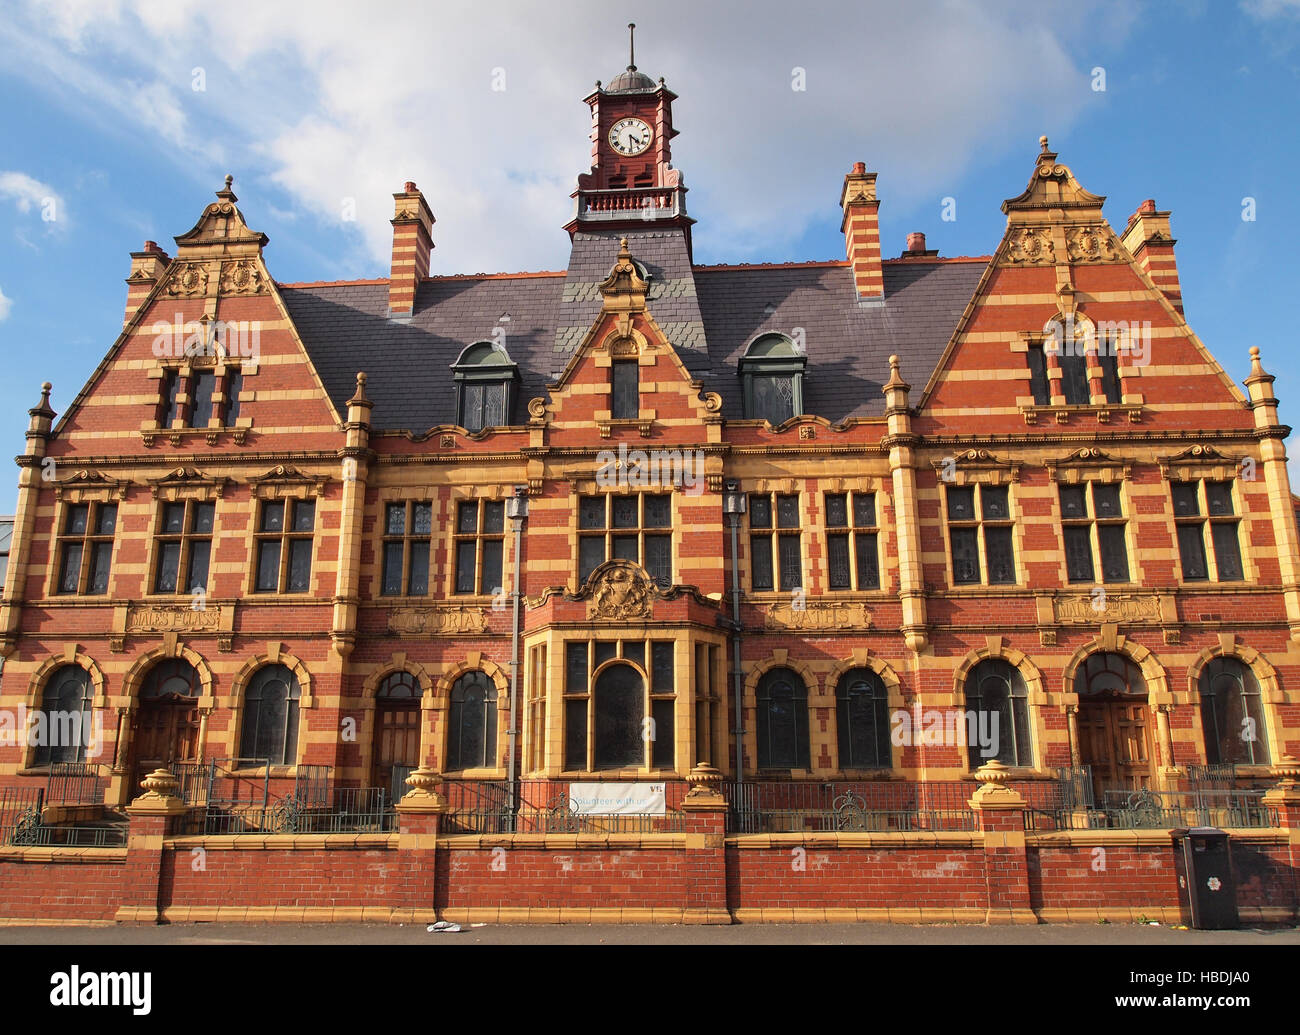 Victoria Baths, Manchester. Victorian baths currently being restored, with separate entrances for males and females. - Stock Image